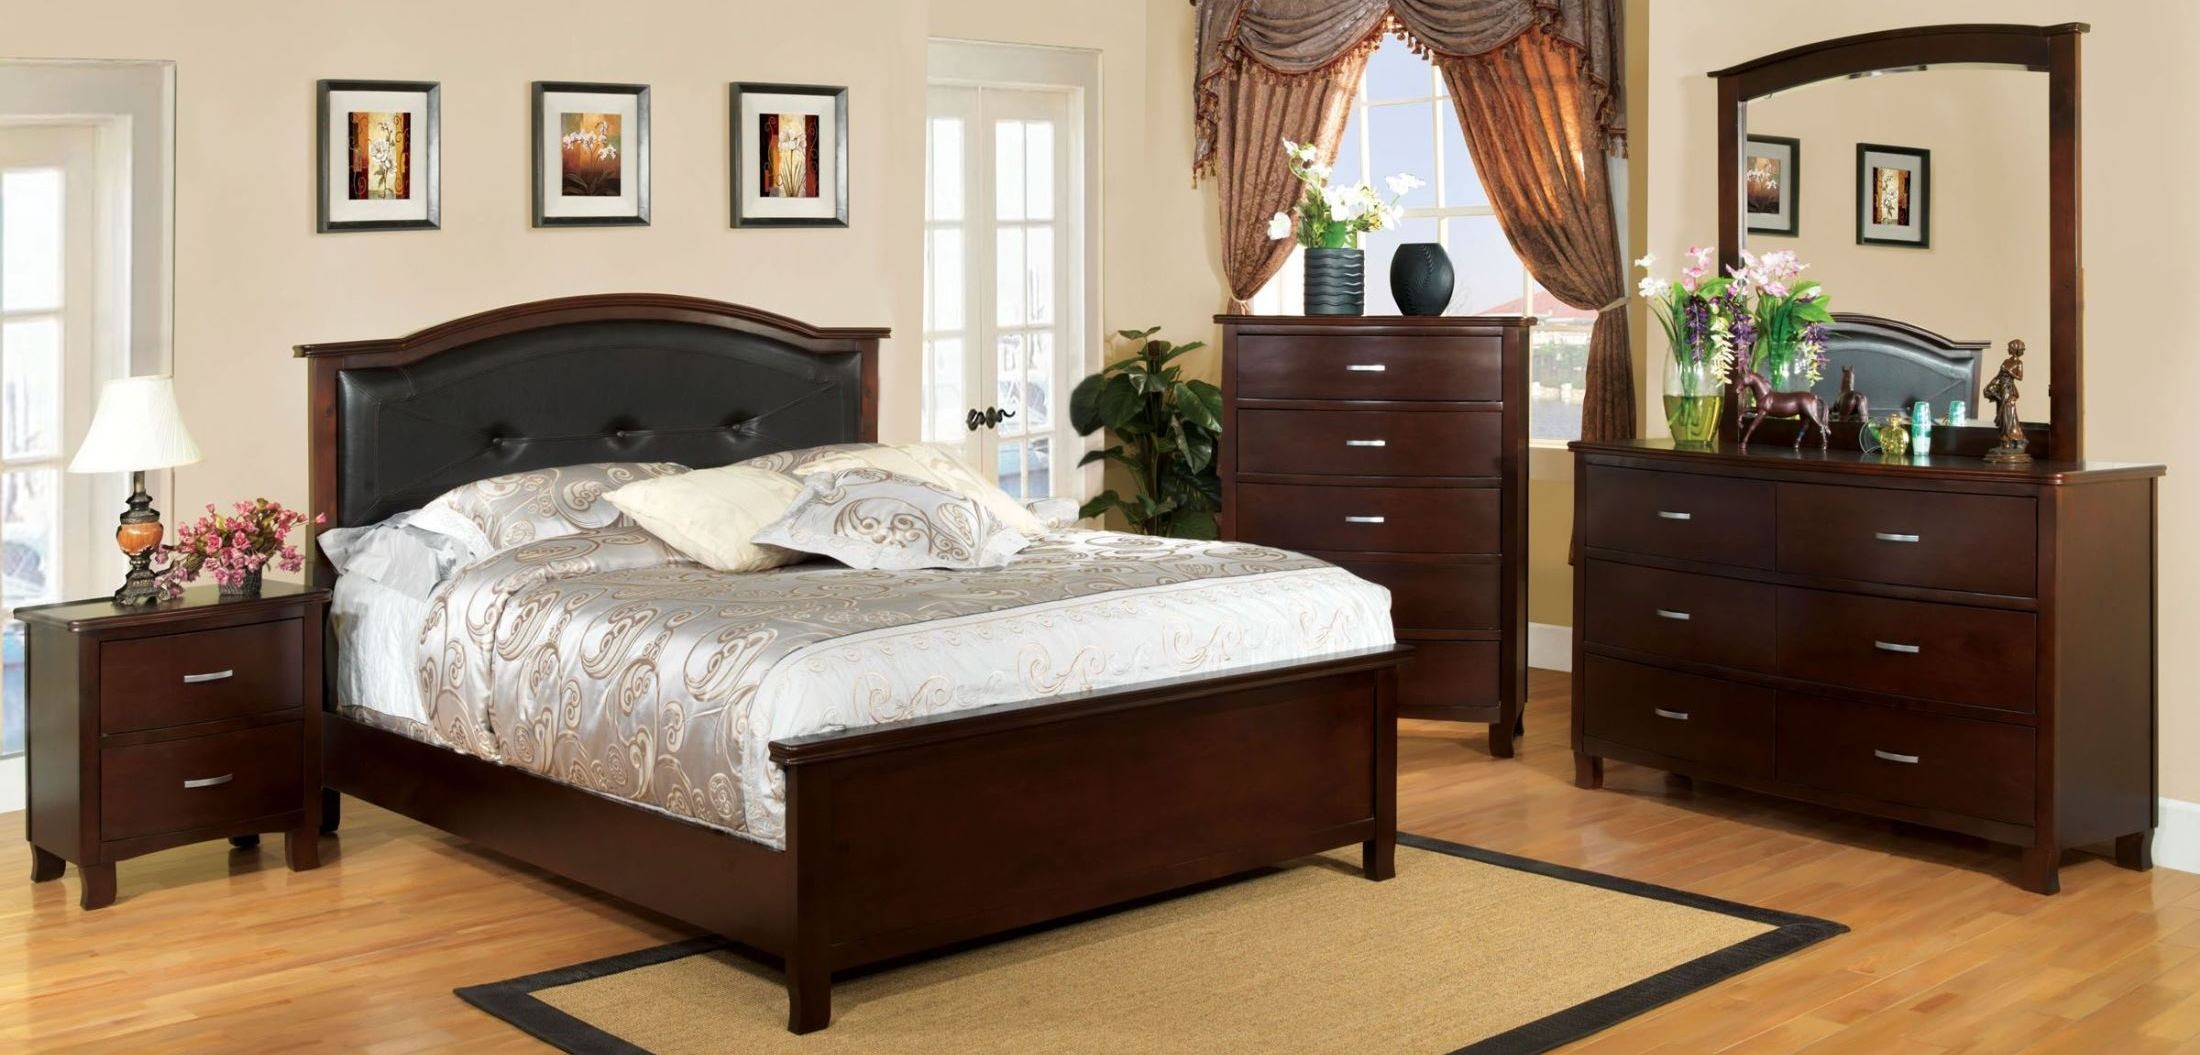 Crest View Brown Cherry Panel Bedroom Set From Furniture Of America Cm7599q Bed Coleman